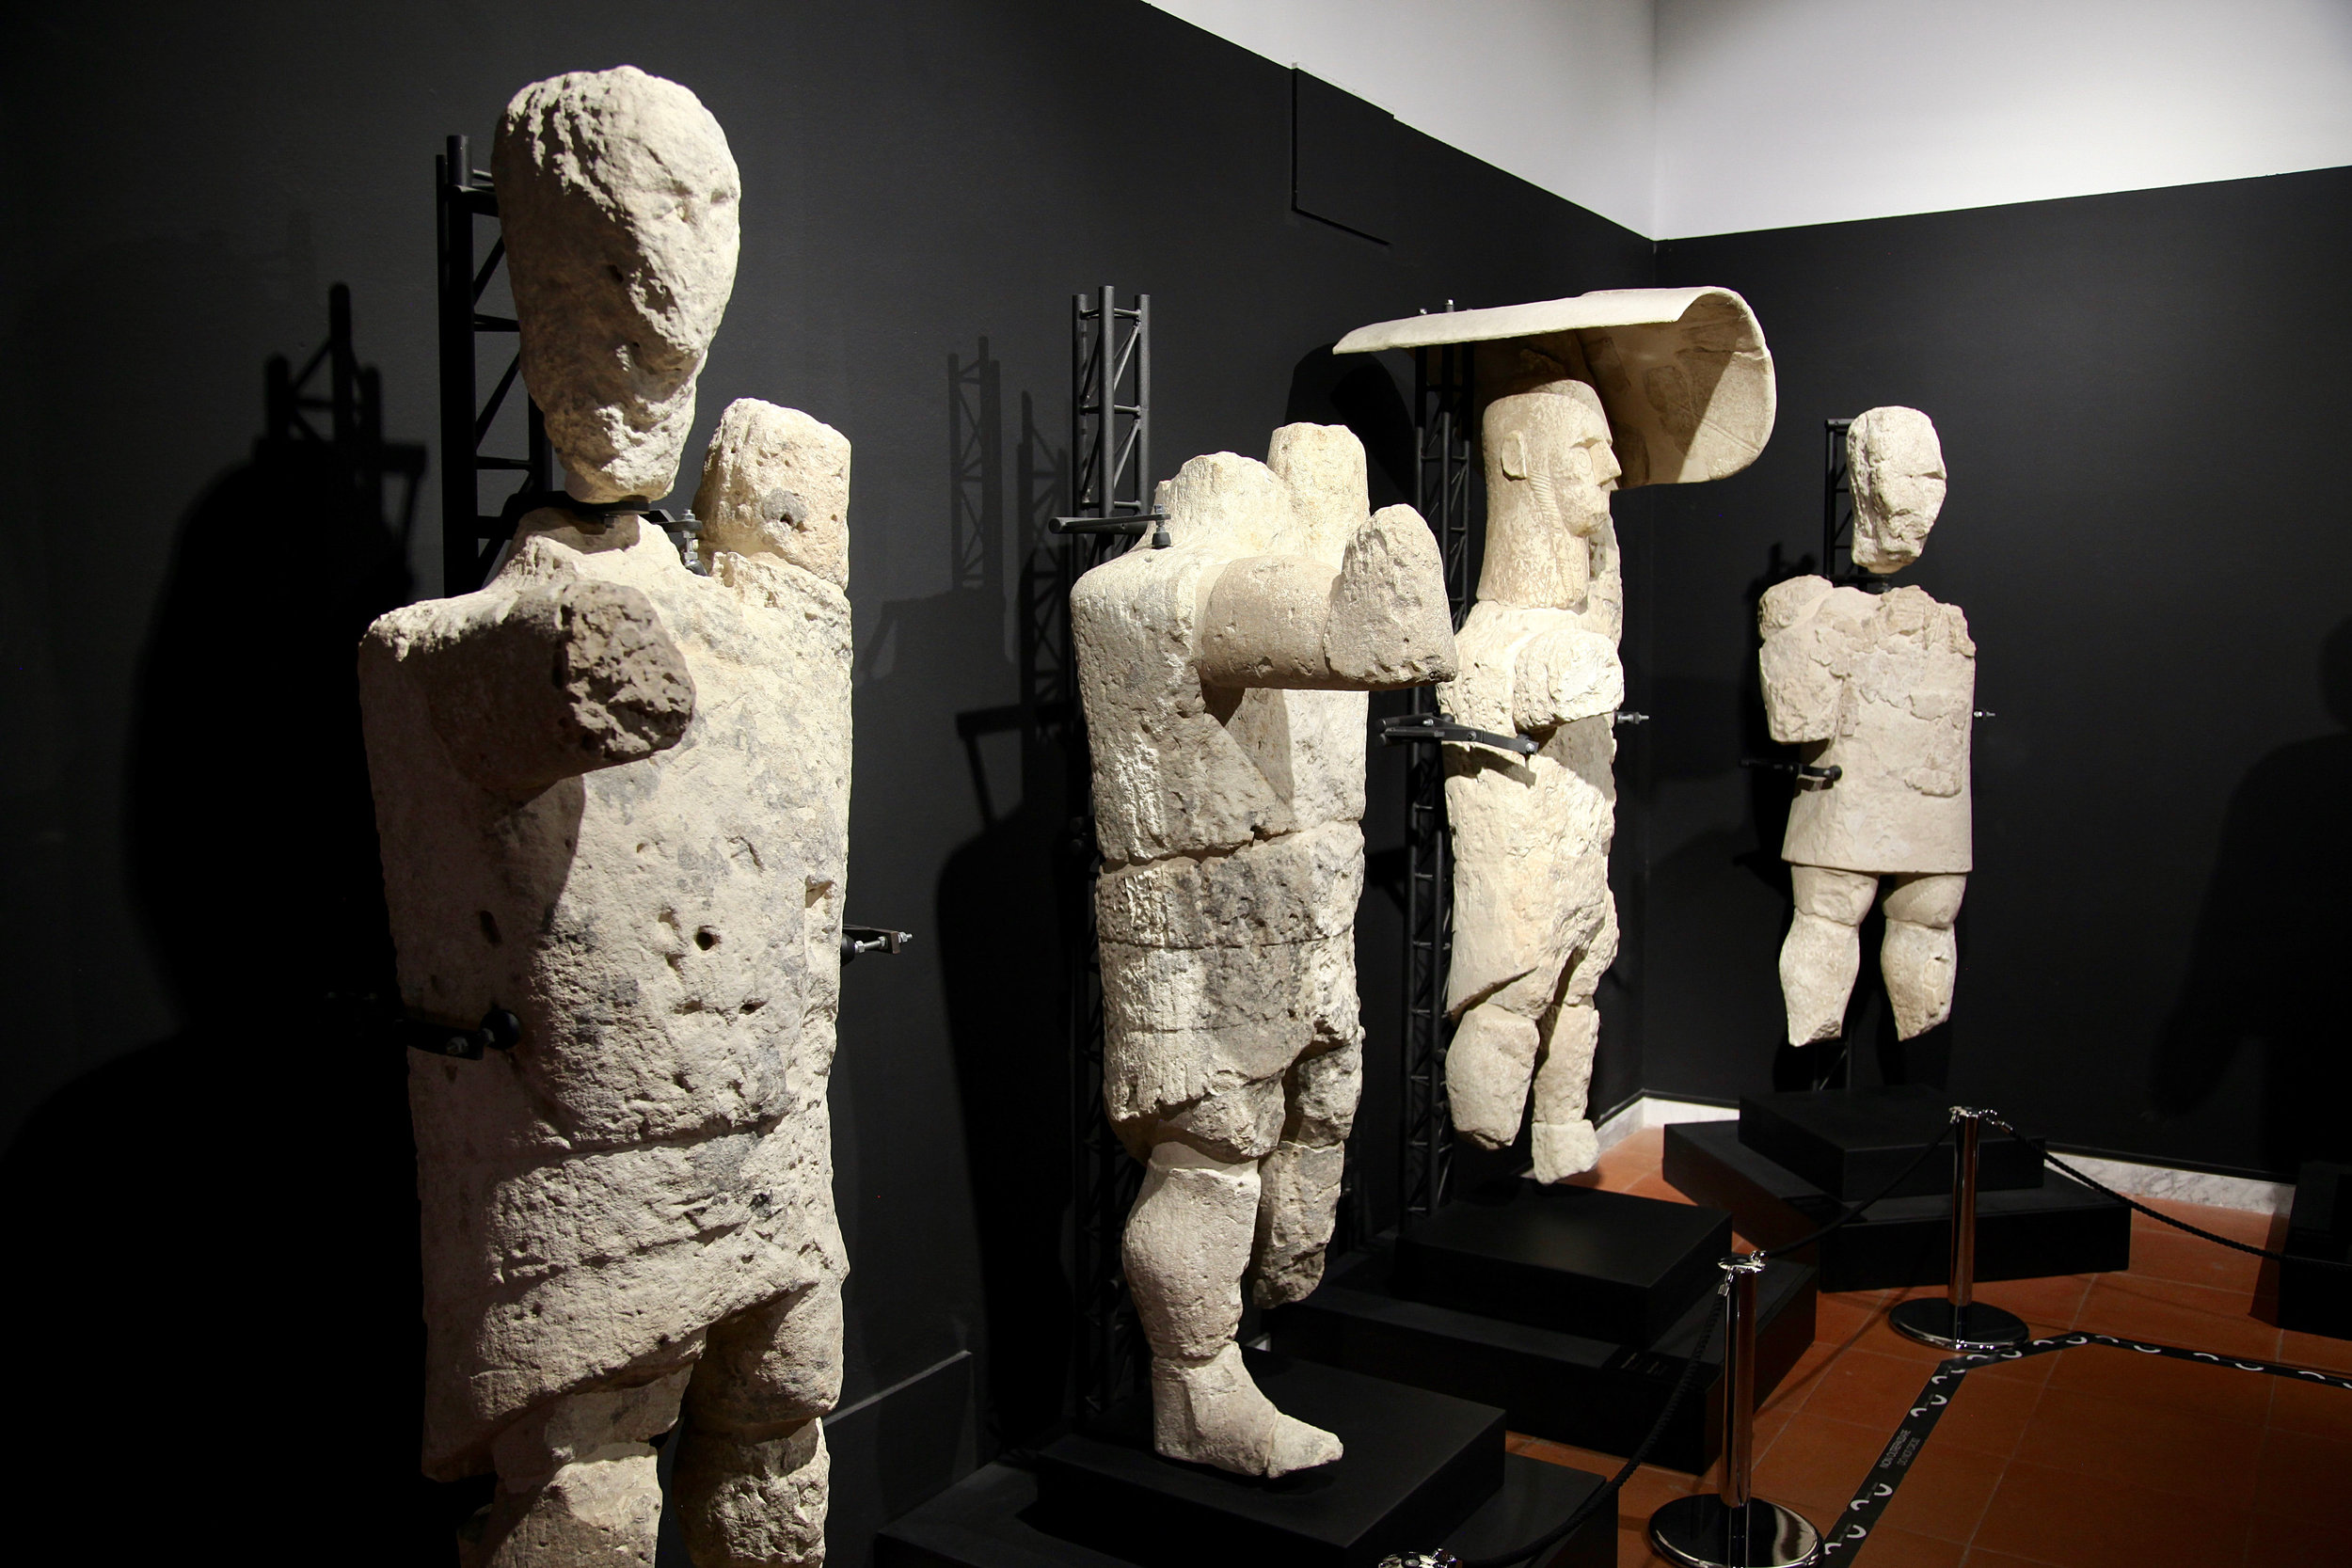 Four statues from Mont'e Prama in the Museum at Cabras, near Oristano